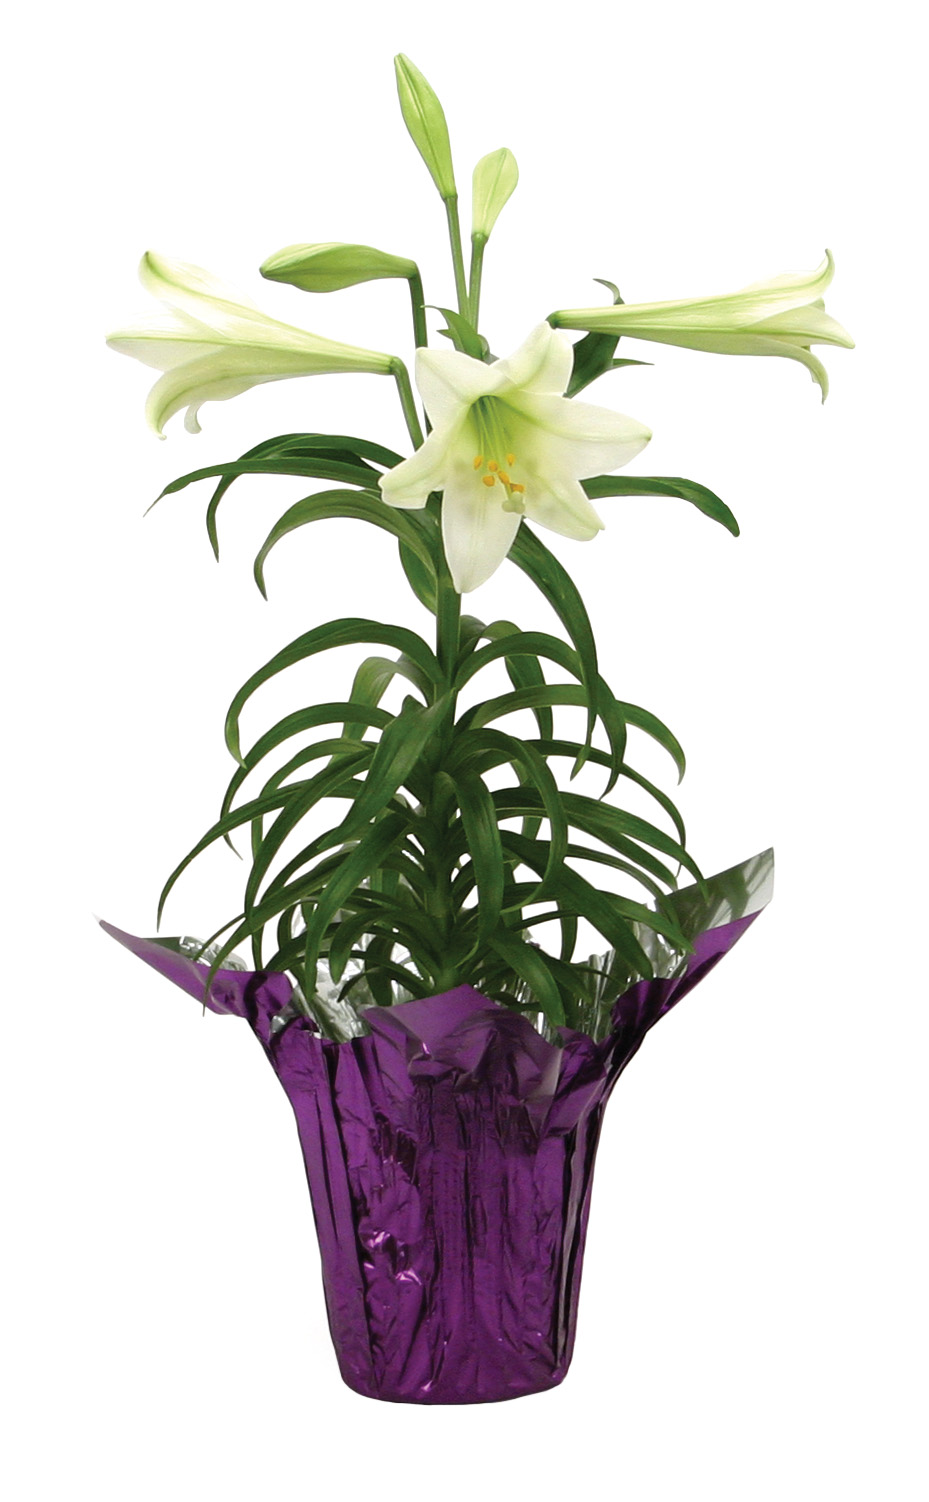 easter lilies free clipart - photo #27